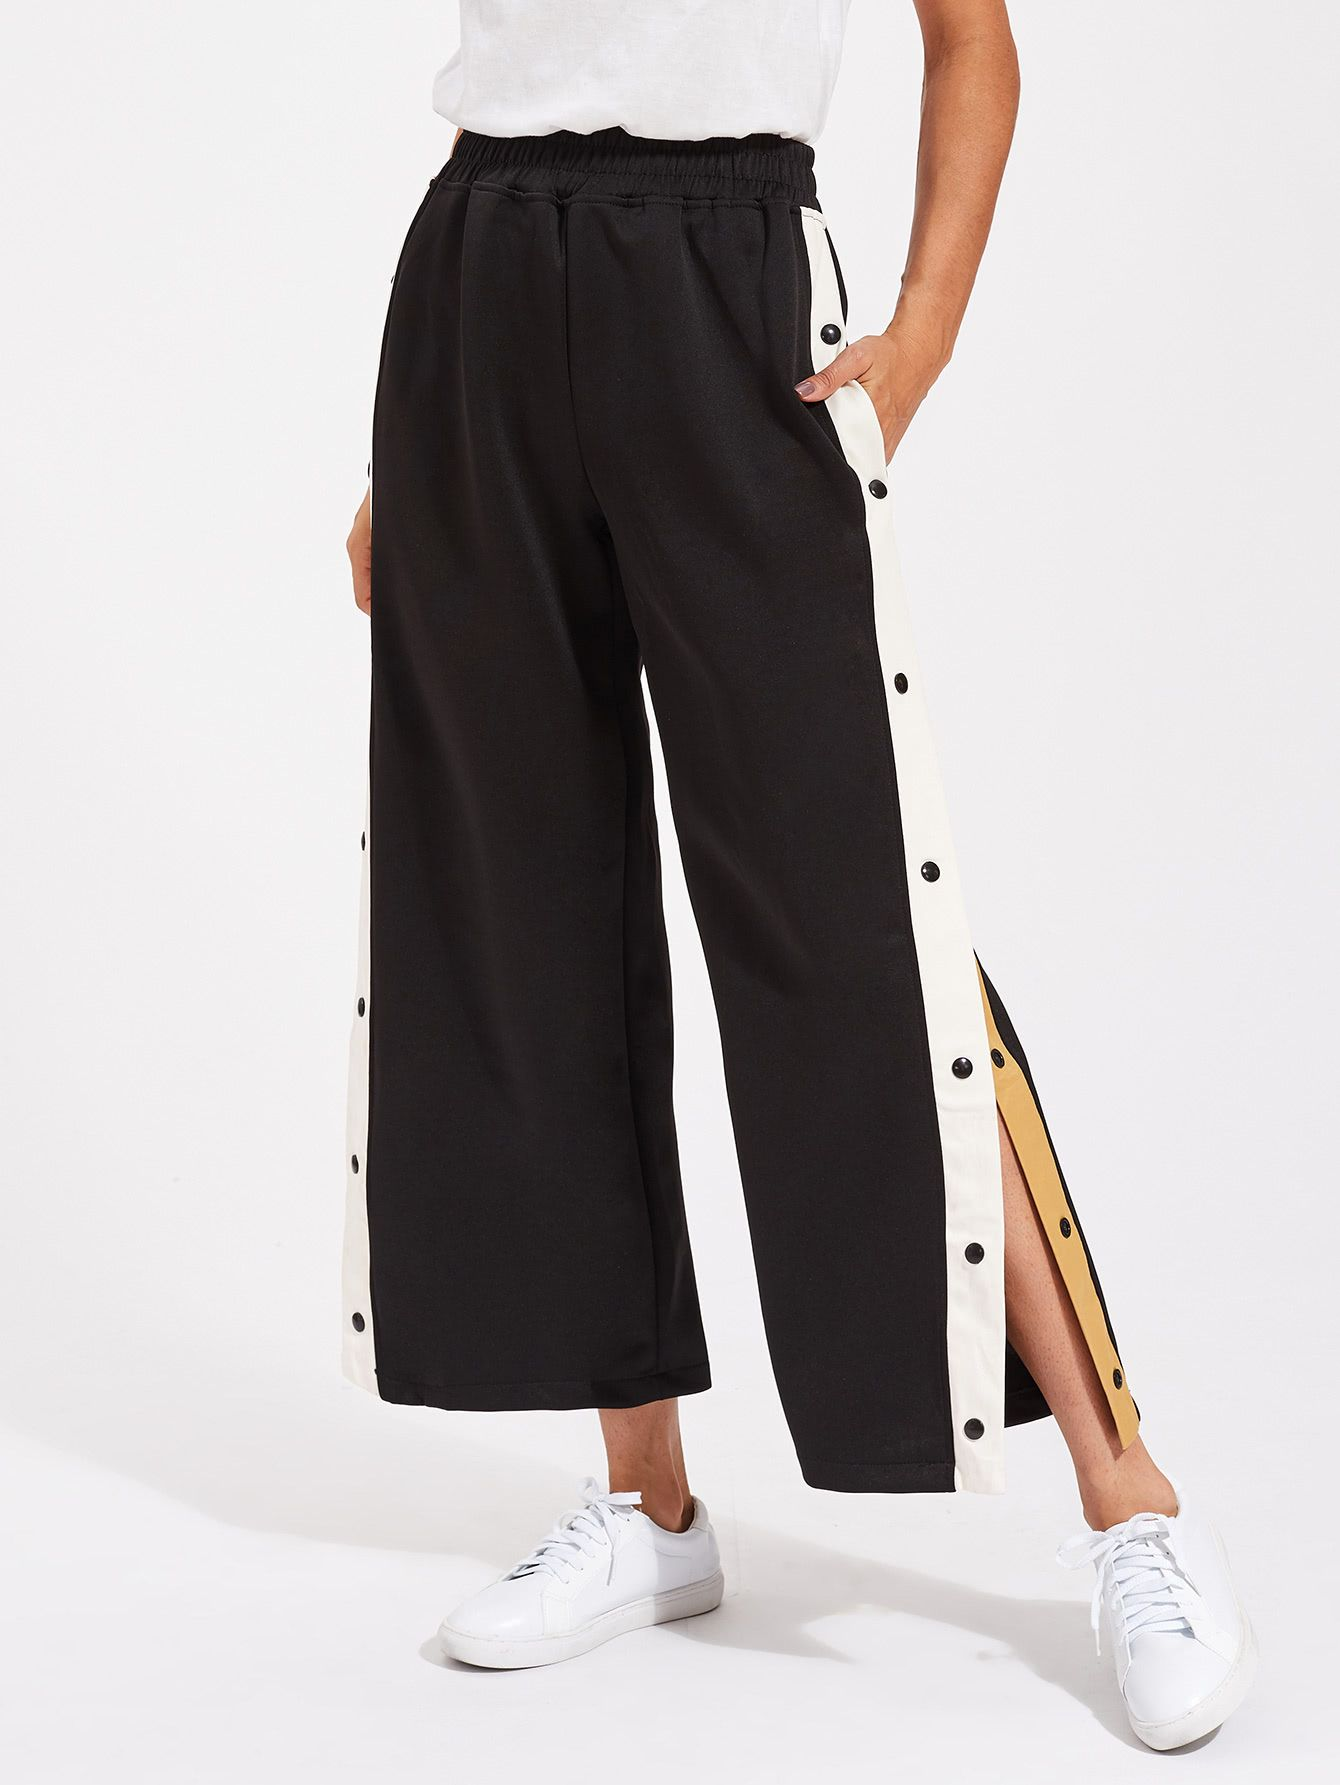 7724c26d11 Shop Contrast Snap Button Side Culotte Pants online. SheIn offers Contrast  Snap Button Side Culotte Pants & more to fit your fashionable needs.